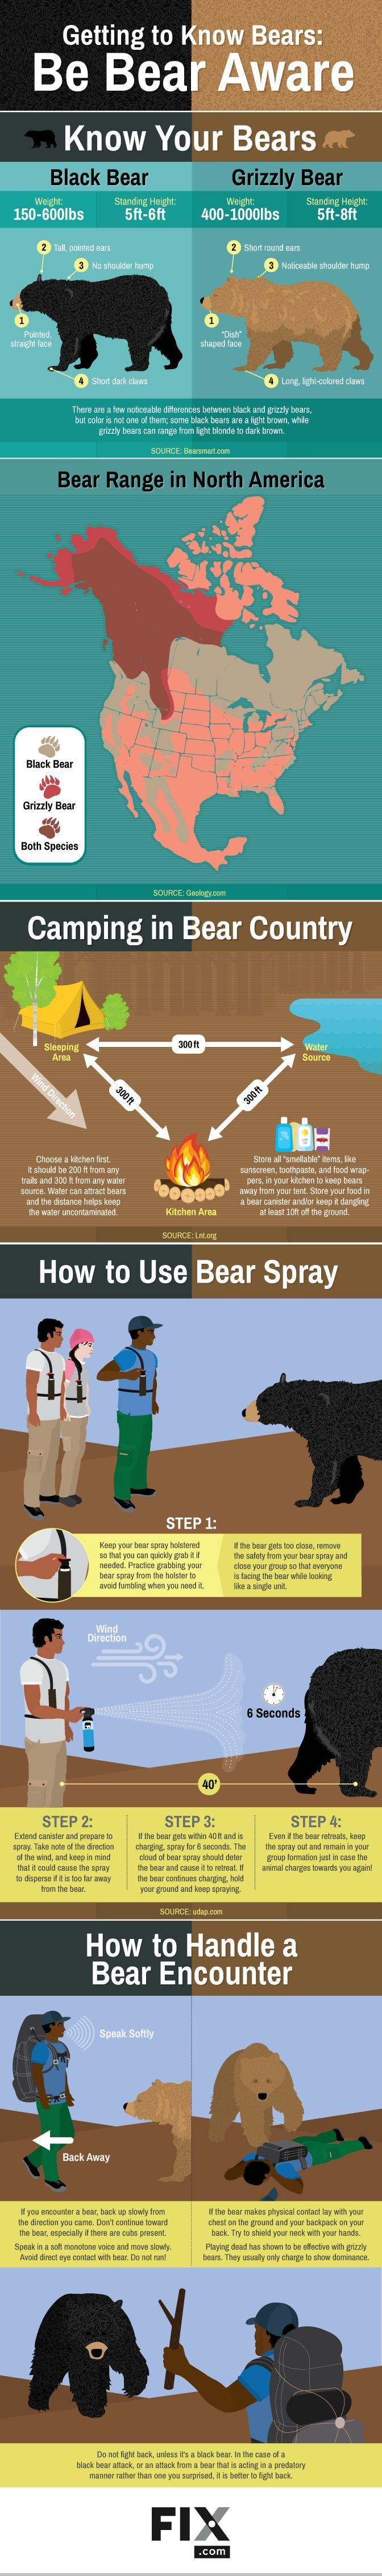 Getting to Know Bears: Be Bear Aware #Infographic #Animal #Beer